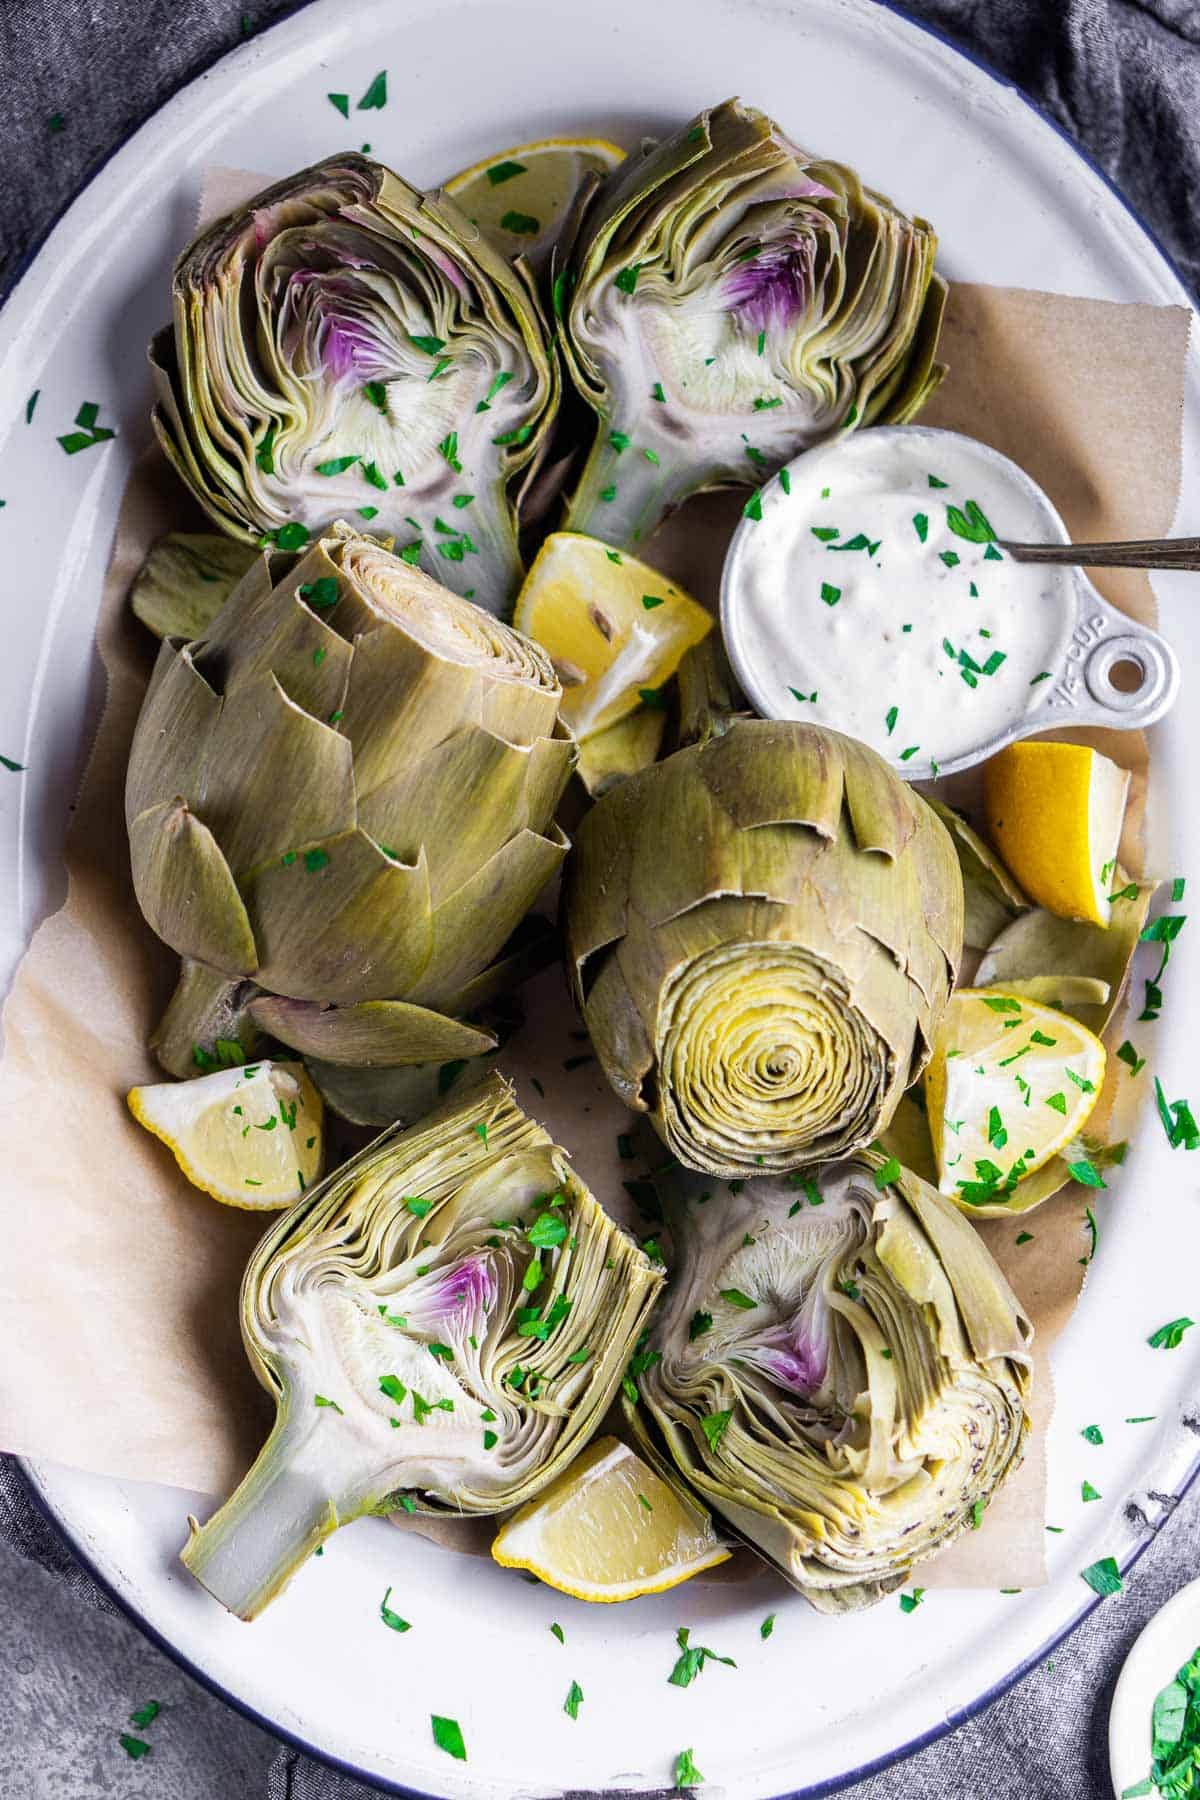 steamed artichokes on white platter with dipping sauce and lemon wedges